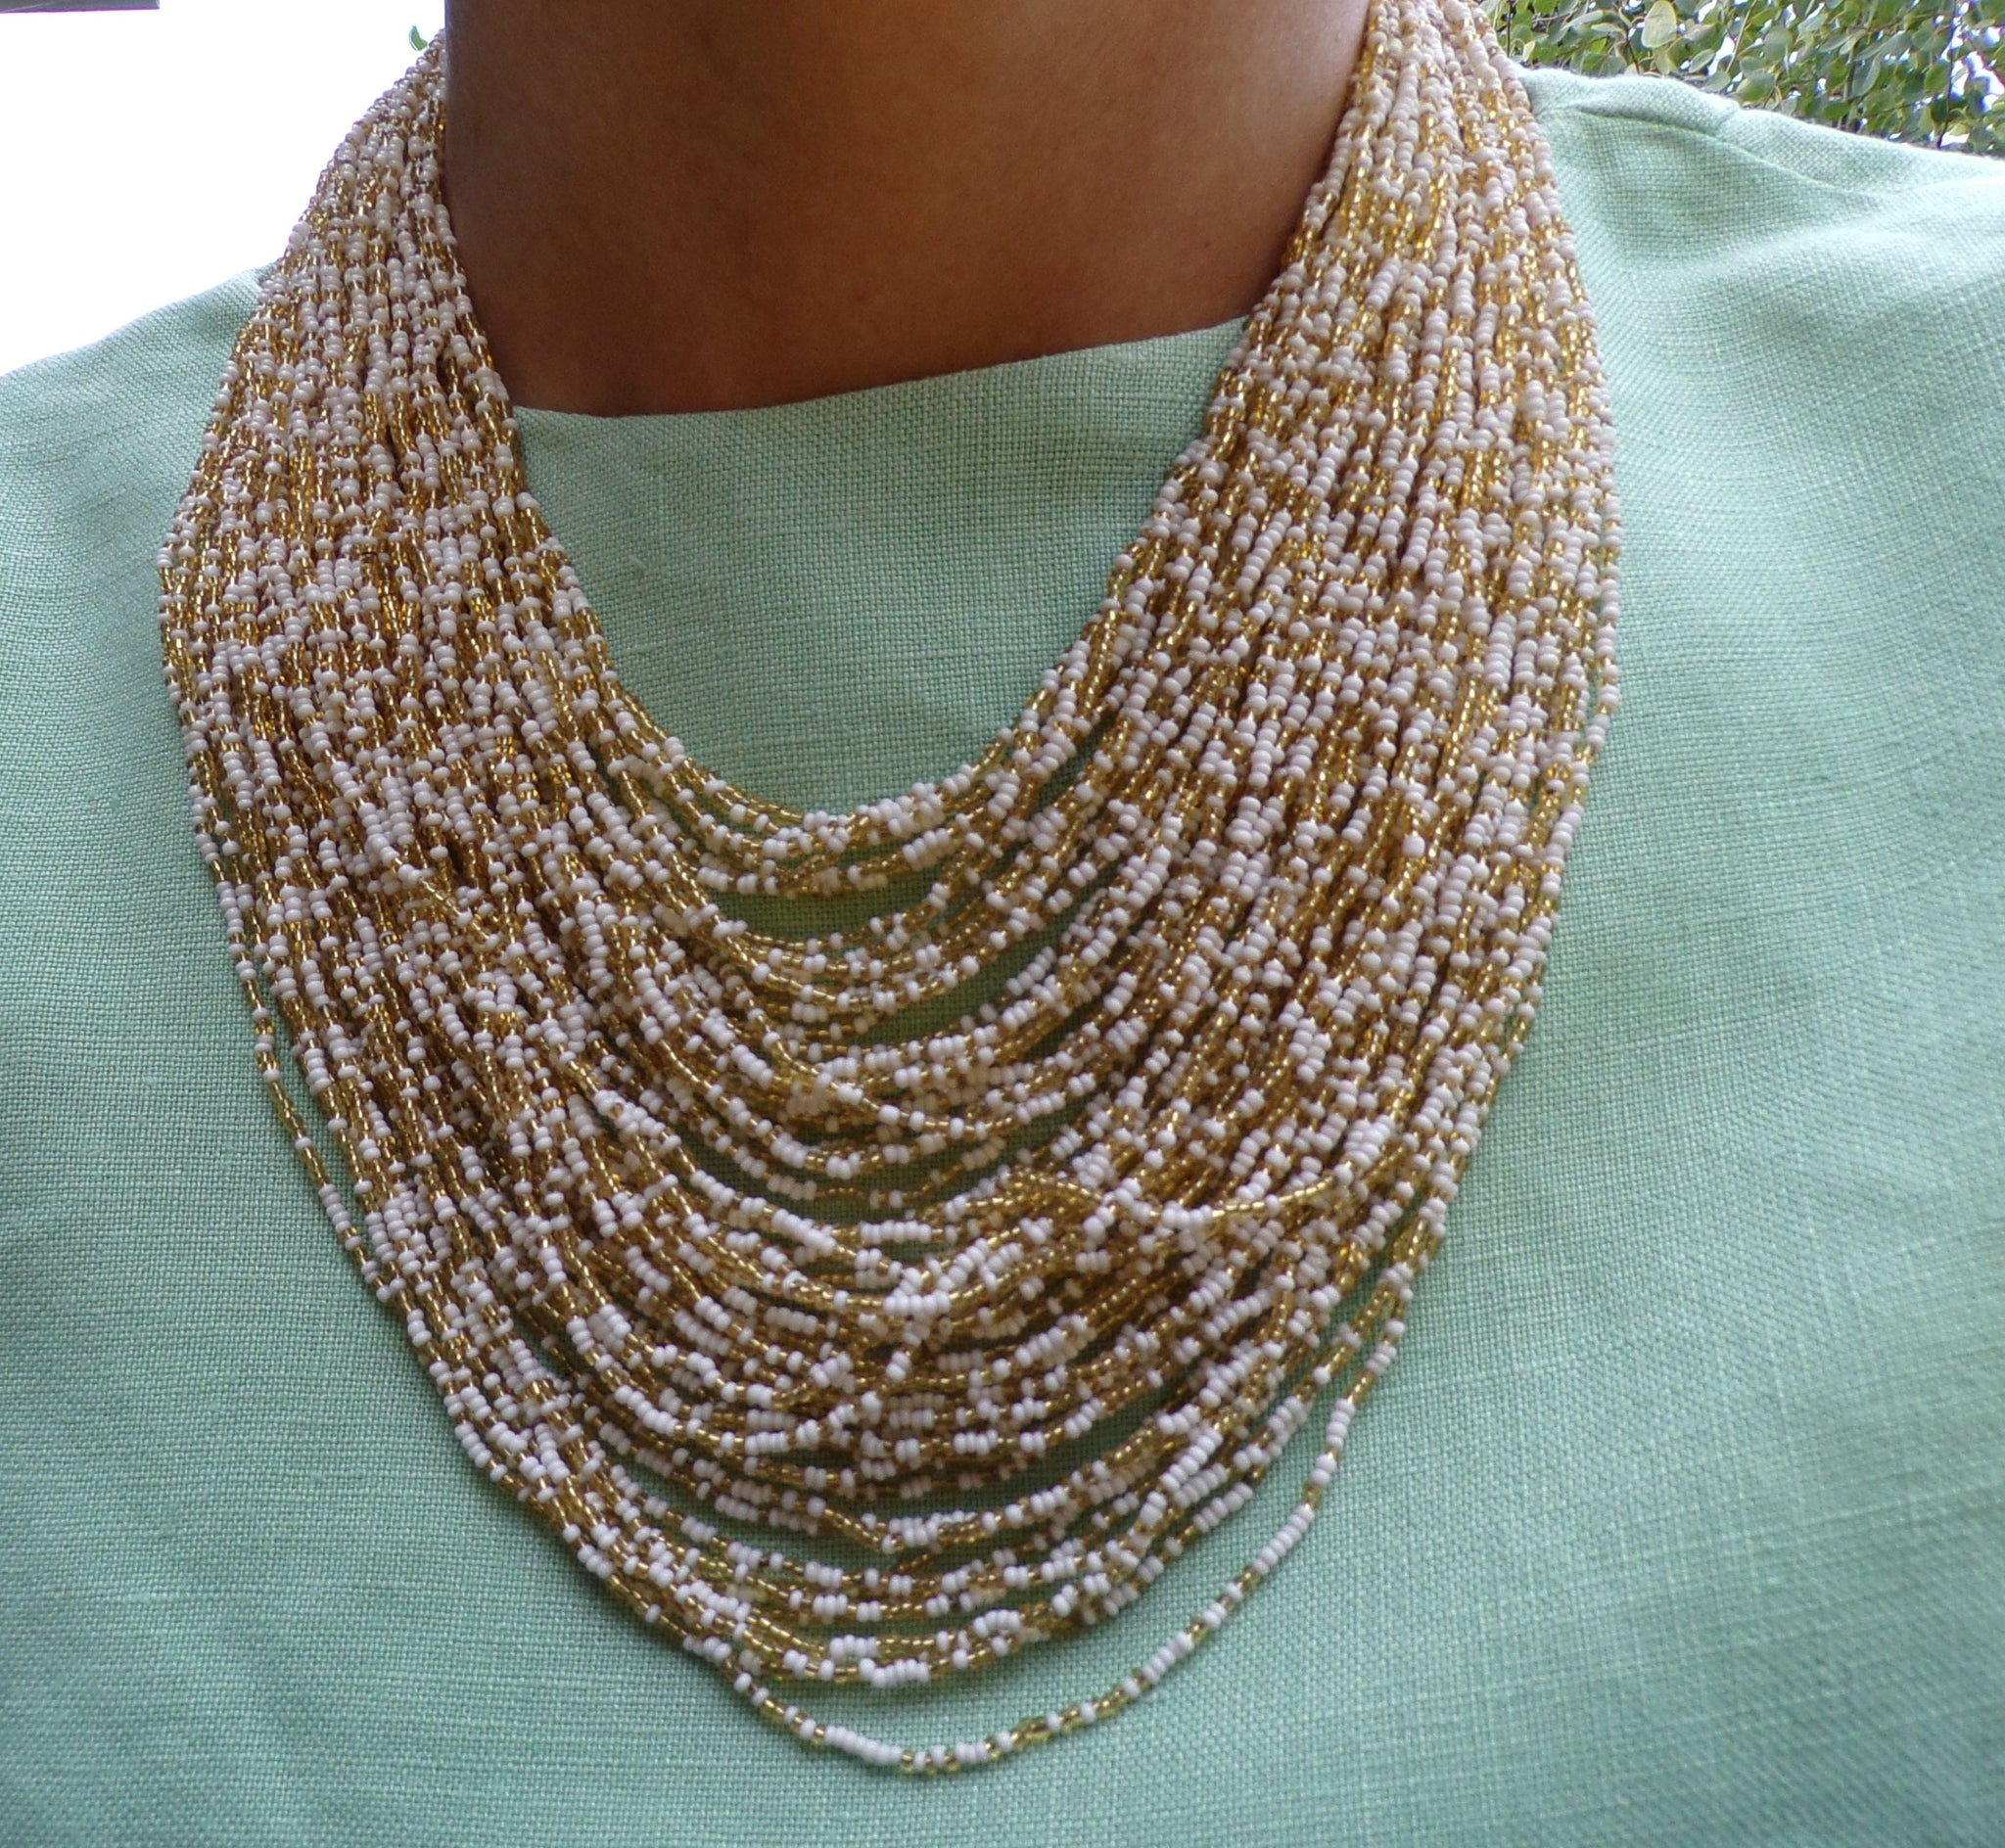 60 strand BEADED STATEMENT NECKLACE 1960's 60's earrings set